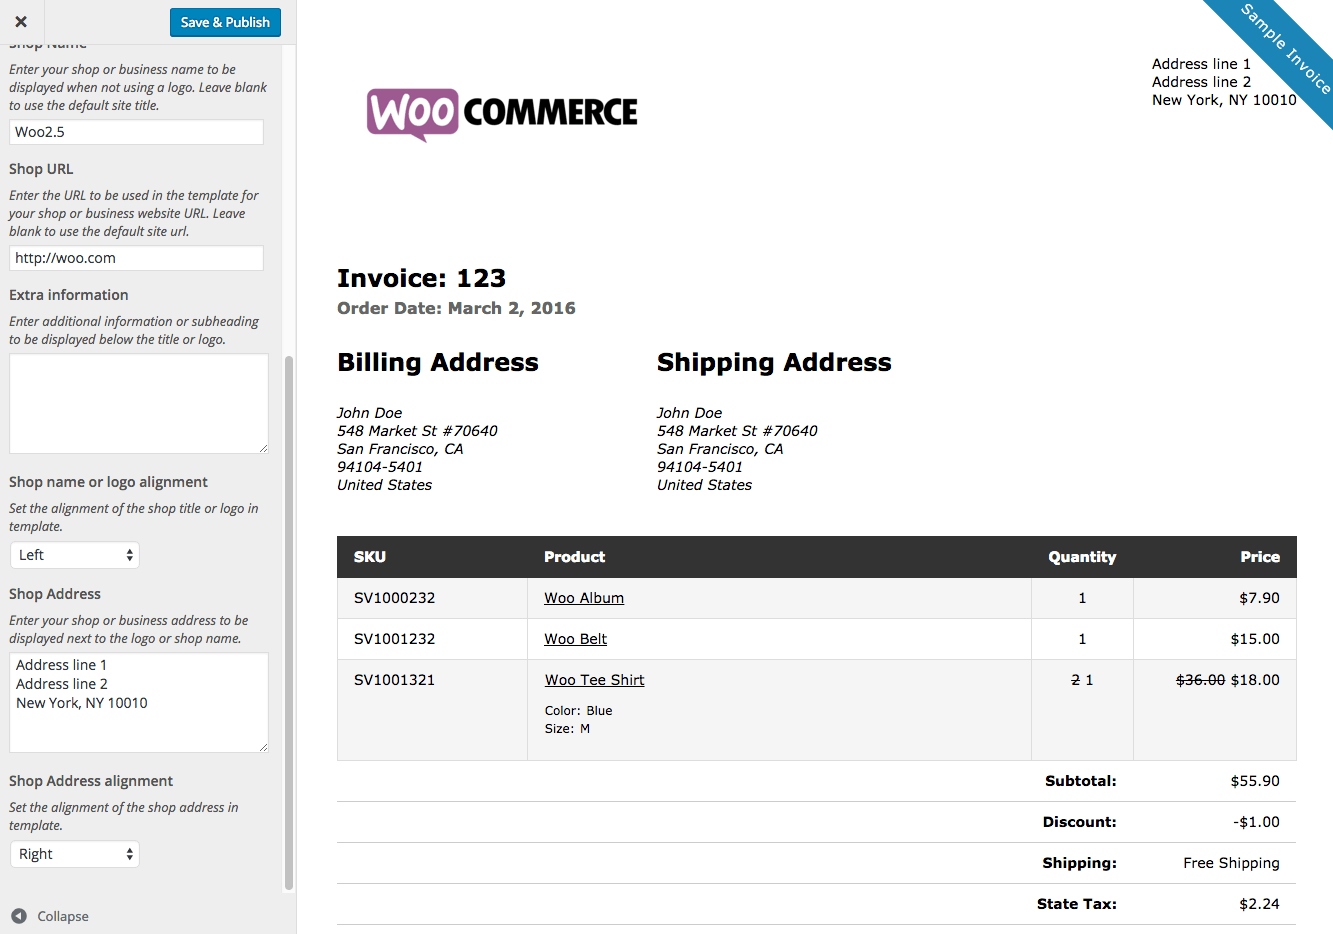 Sandiegolocksmithsus  Surprising Woocommerce Print Invoices Amp Packing Lists  Woocommerce Docs With Outstanding Woocommerce Print Invoices  Packing Lists Customizer With Appealing Receipt And Payment Rules Also What Is Receipt Paper Made Of In Addition Itemized Receipts And Scanning Receipts Into Quicken As Well As Receipt Photo Additionally De Gross Receipts Tax From Docswoocommercecom With Sandiegolocksmithsus  Outstanding Woocommerce Print Invoices Amp Packing Lists  Woocommerce Docs With Appealing Woocommerce Print Invoices  Packing Lists Customizer And Surprising Receipt And Payment Rules Also What Is Receipt Paper Made Of In Addition Itemized Receipts From Docswoocommercecom